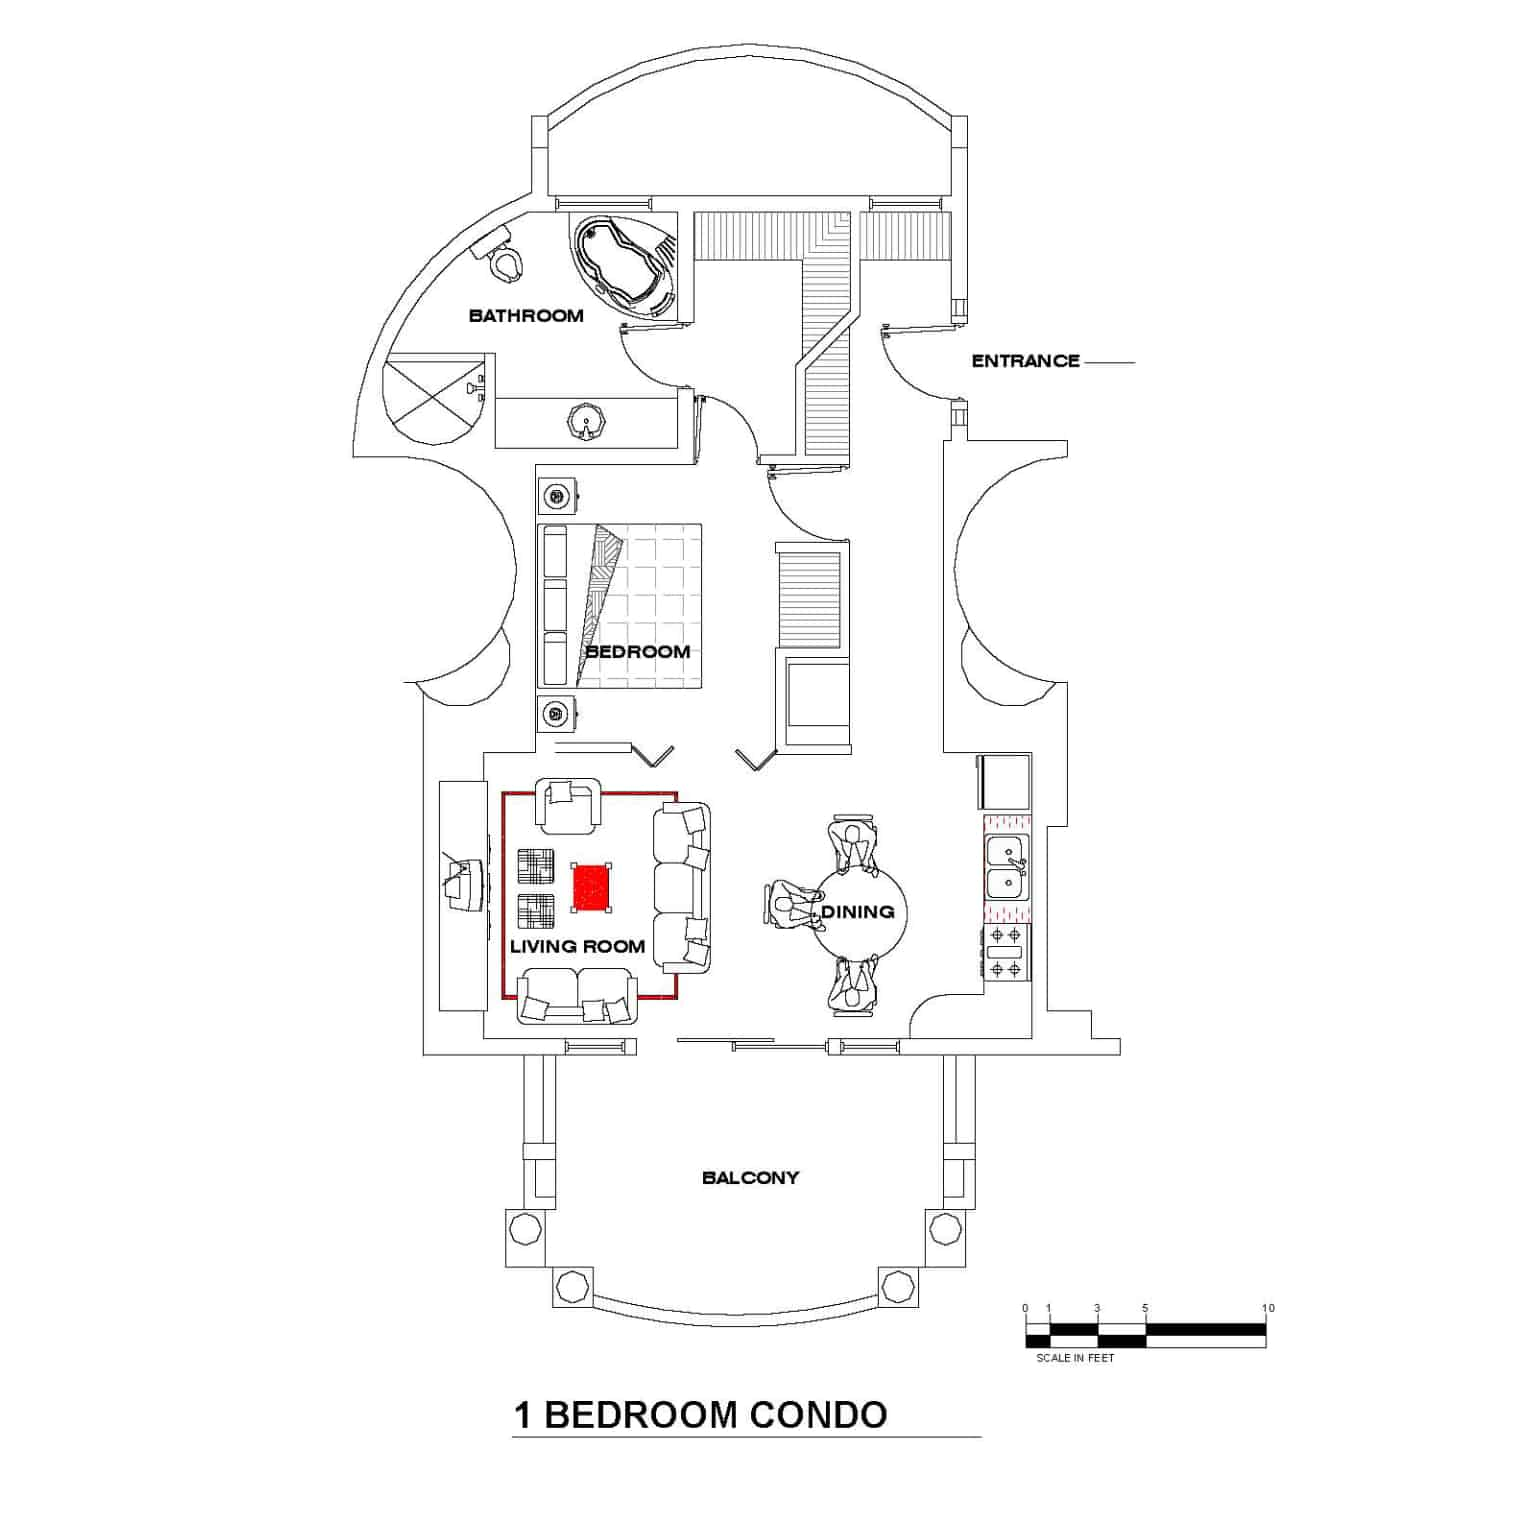 1-Bedroom-Condo-Floor-Plan